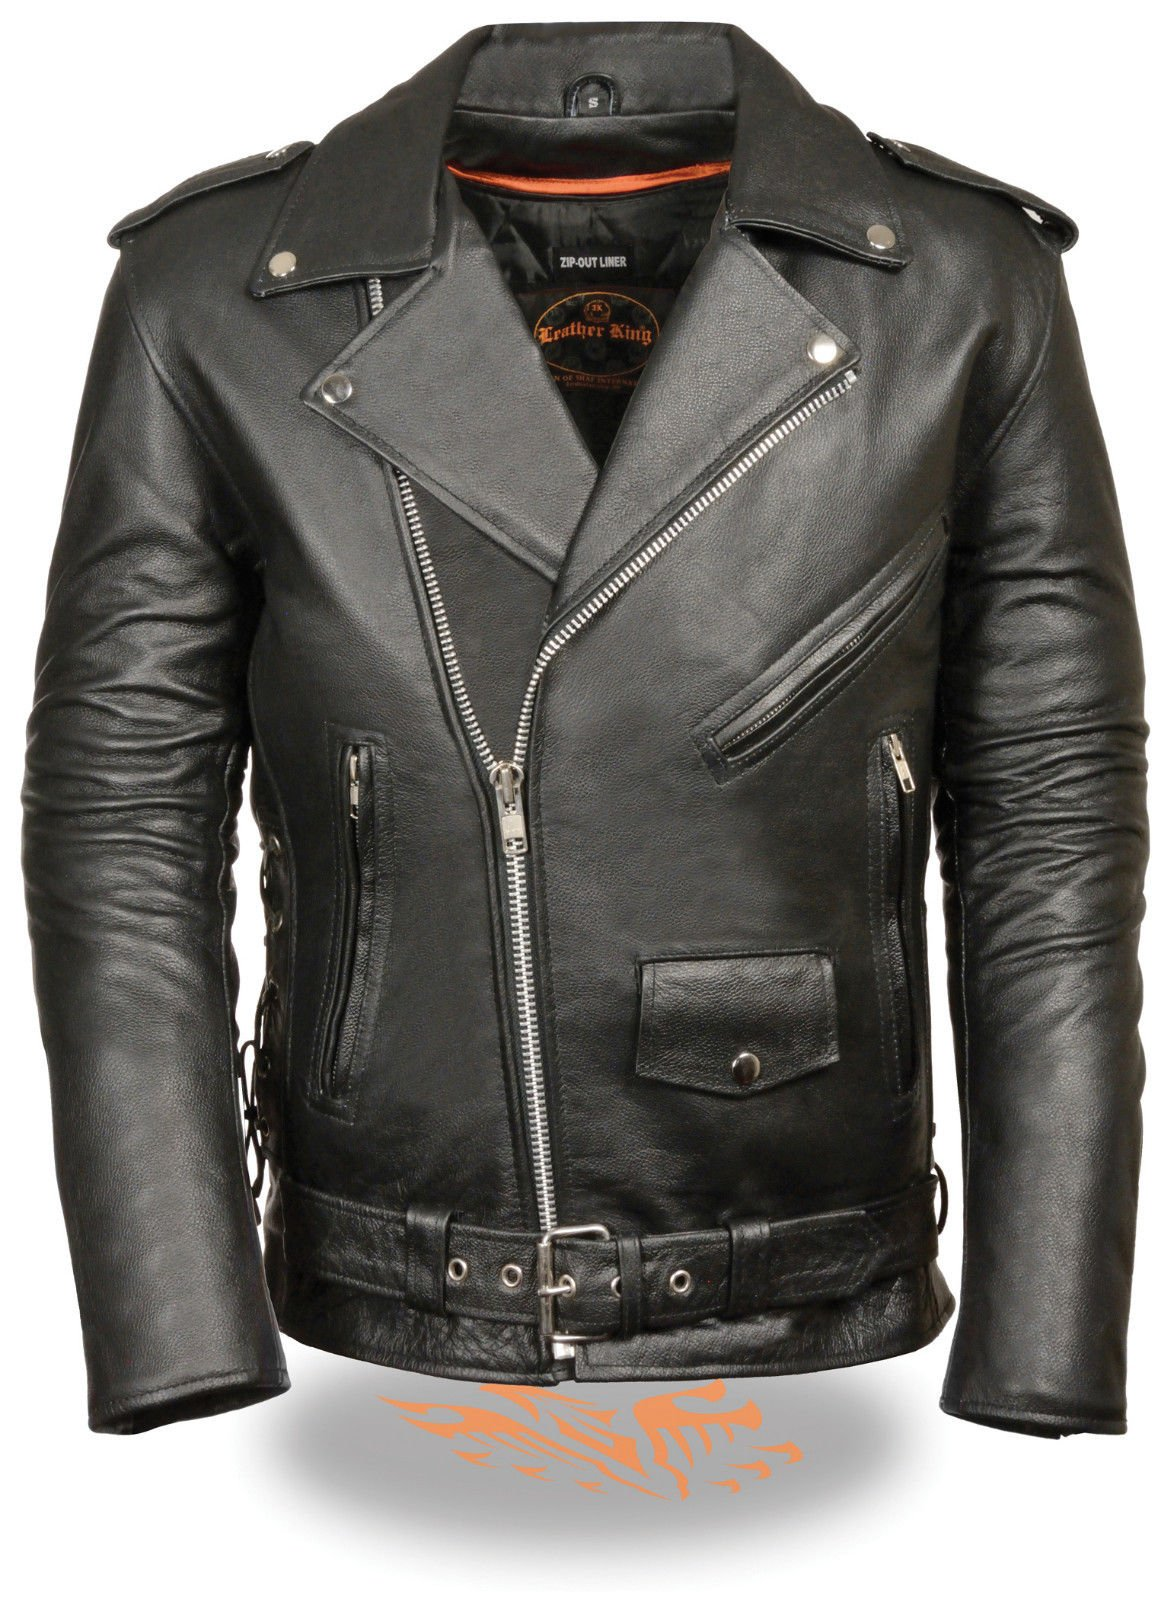 Men's Motorcycle Blk Police Style Leather Jacket with Side Laces upto 11XL Size (9XL-11XL Regular)